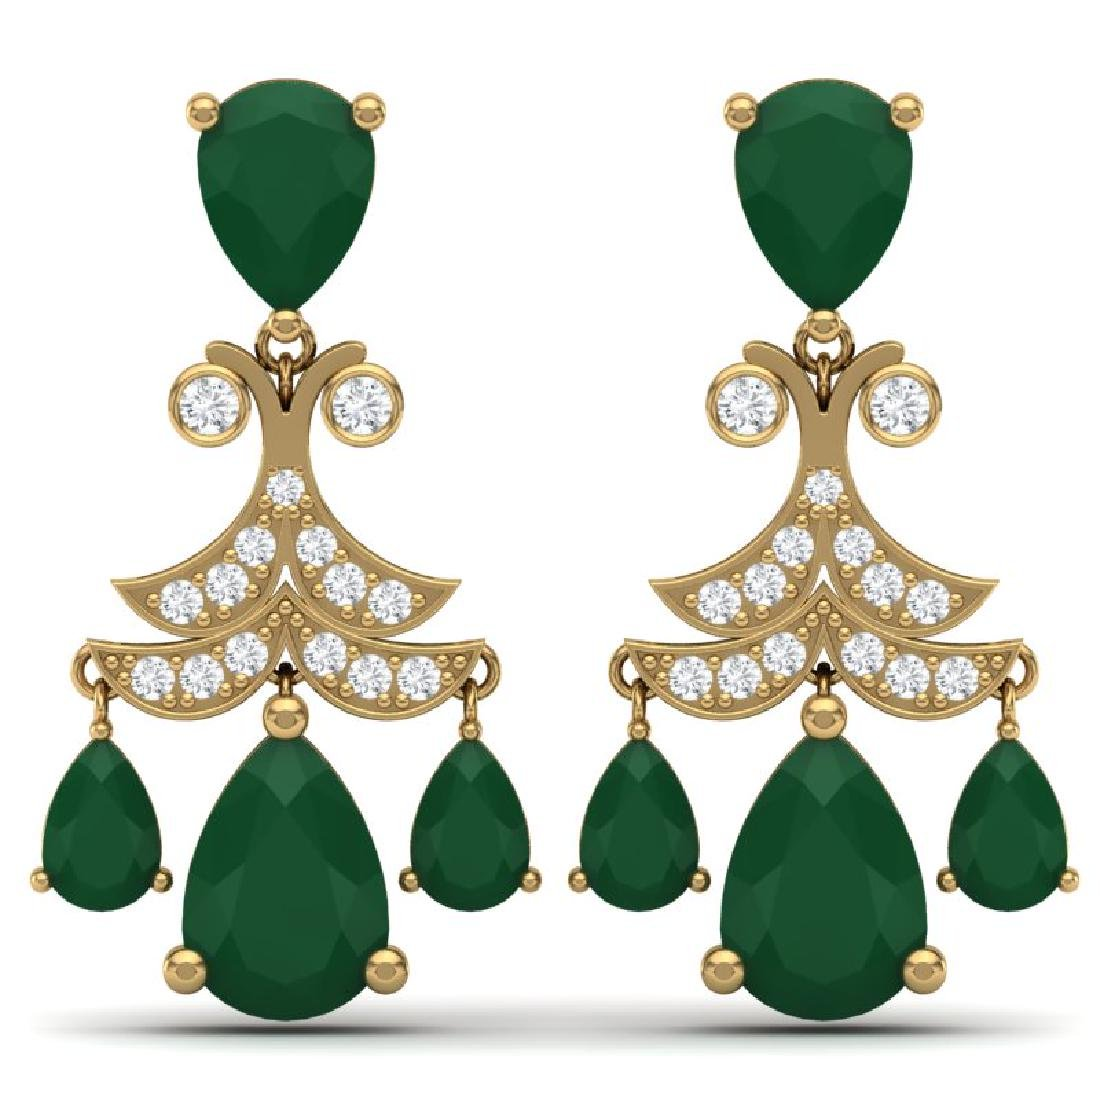 11.97 CTW Royalty Emerald & VS Diamond Earrings 18K